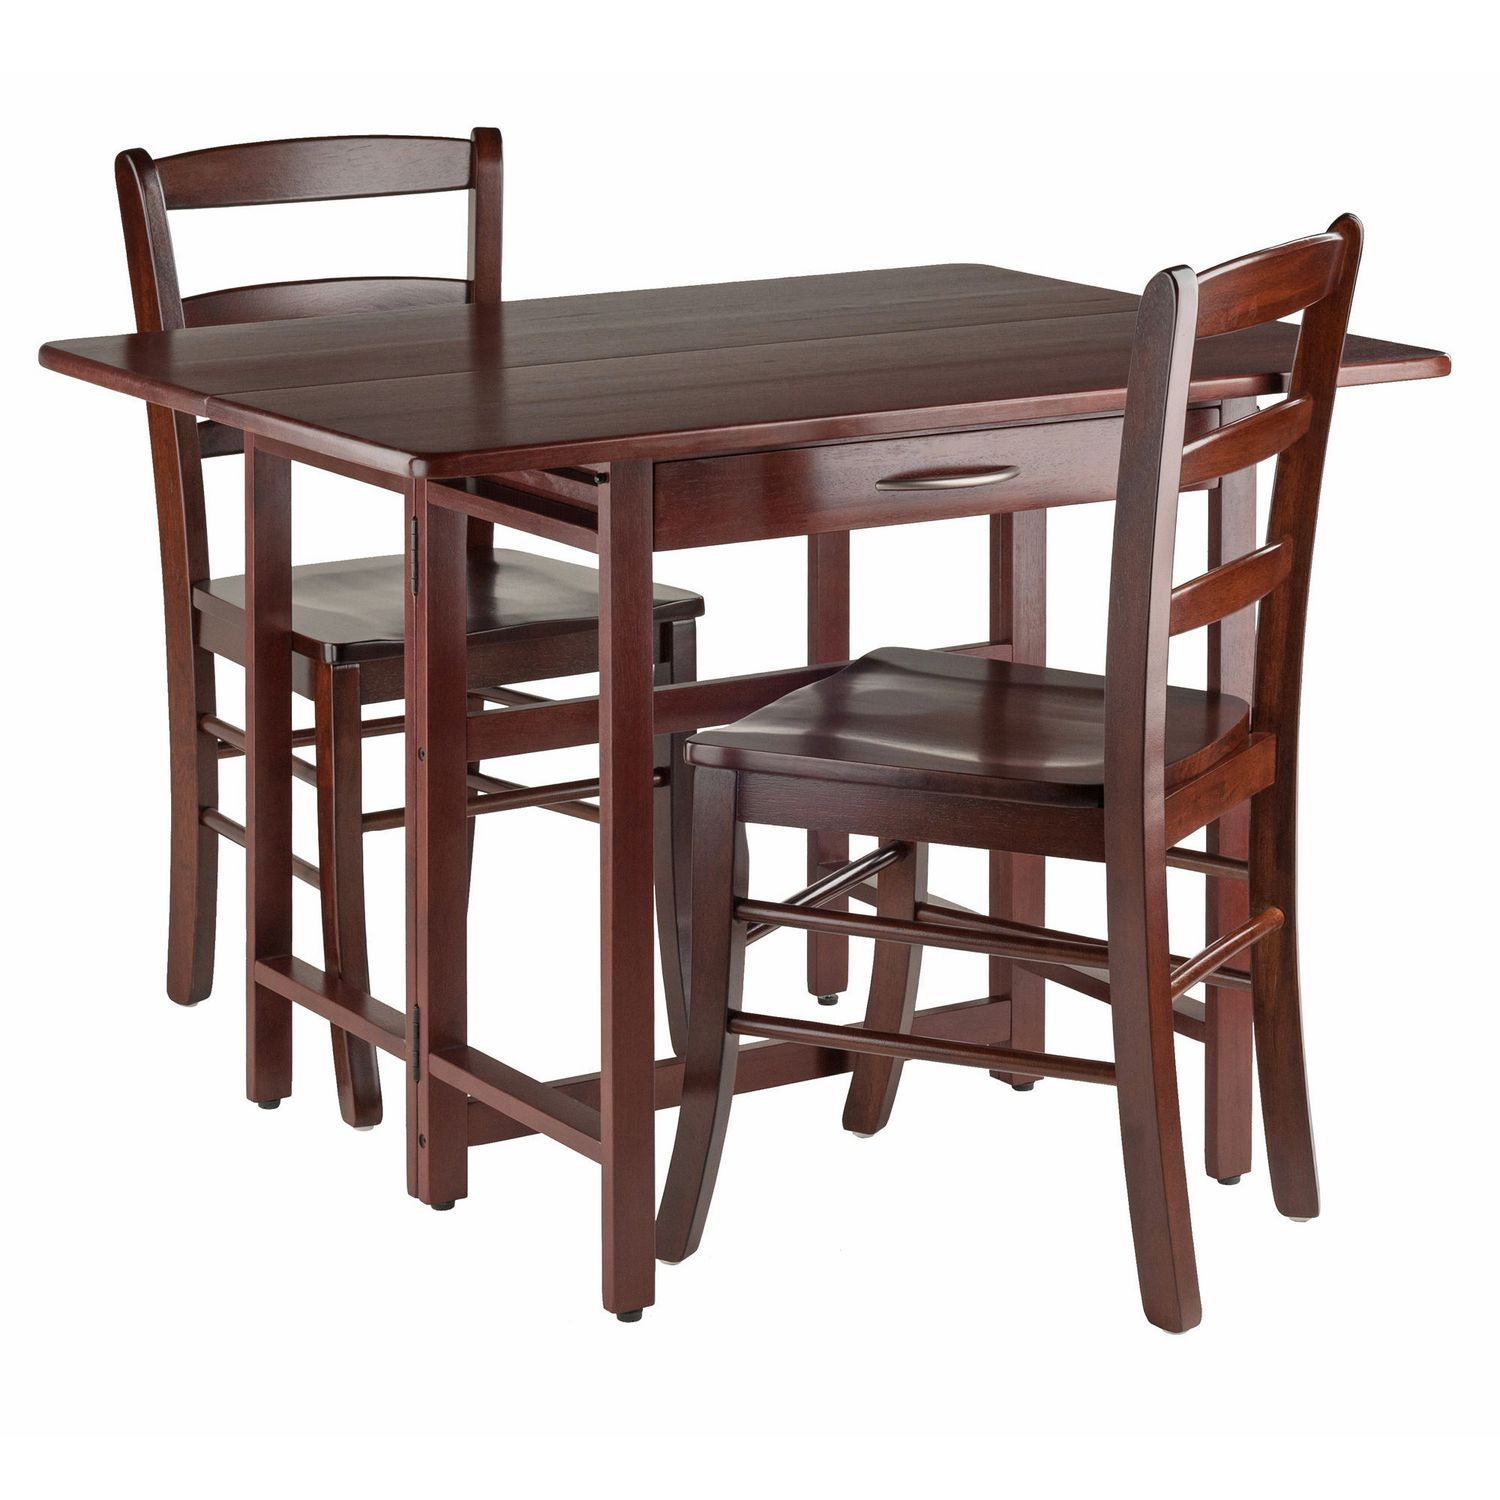 Winsome Taylor 3 Piece Set Drop Leaf Table With Ladder Back Chair